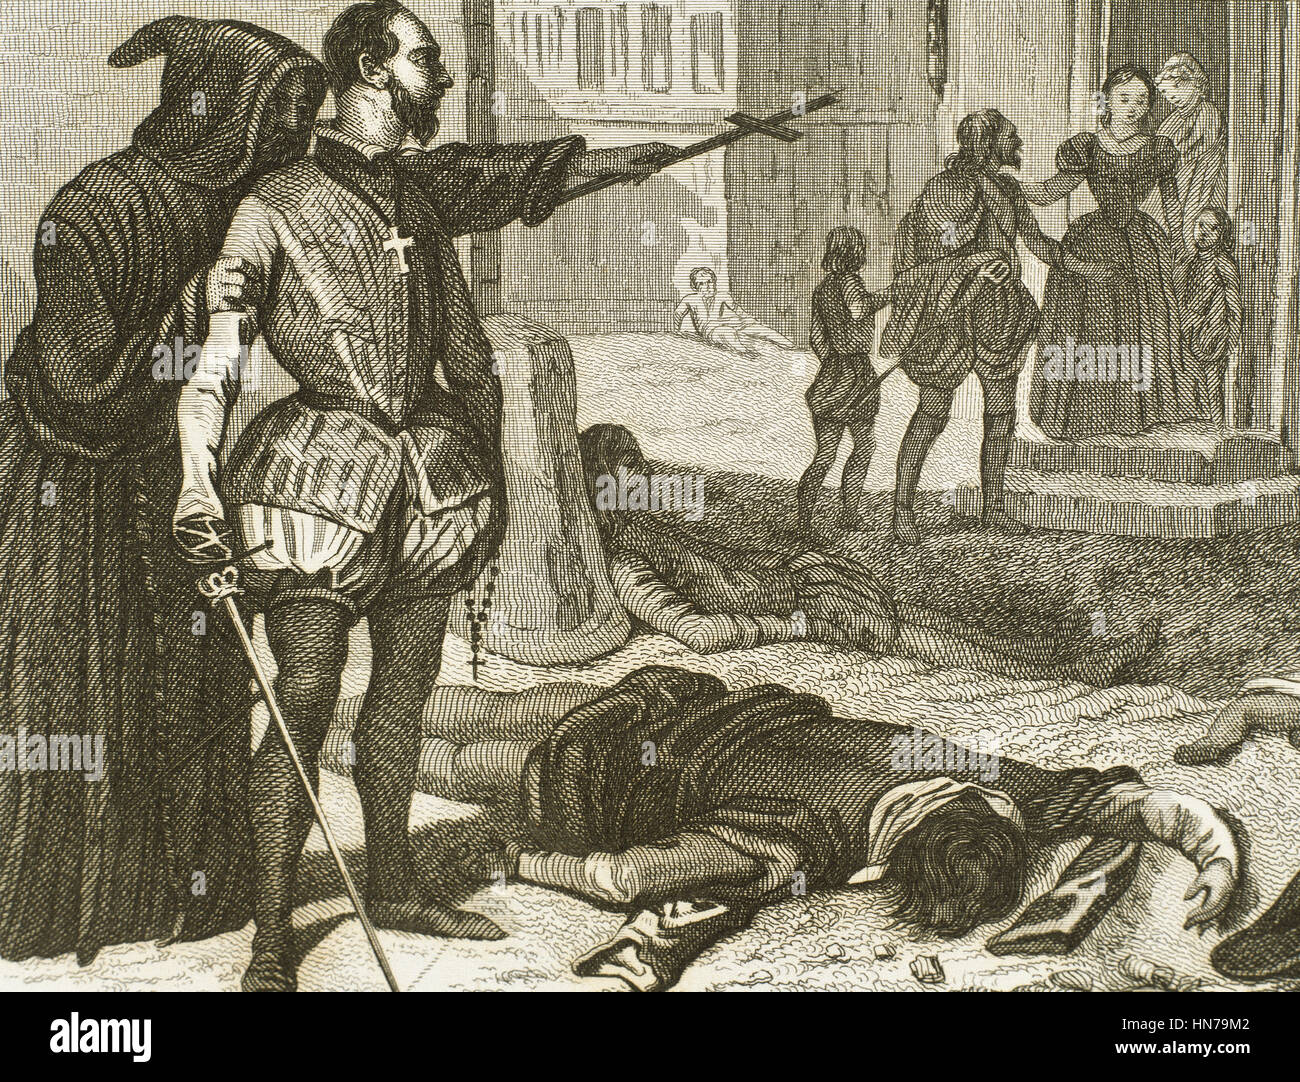 France. French Wars of Religion. St. Batholomew's Day massacre, 1572. Assassinations of Catholic violence against the Huguenots, the French Calvinist Protestants. Engraving. 19th century. Stock Photo